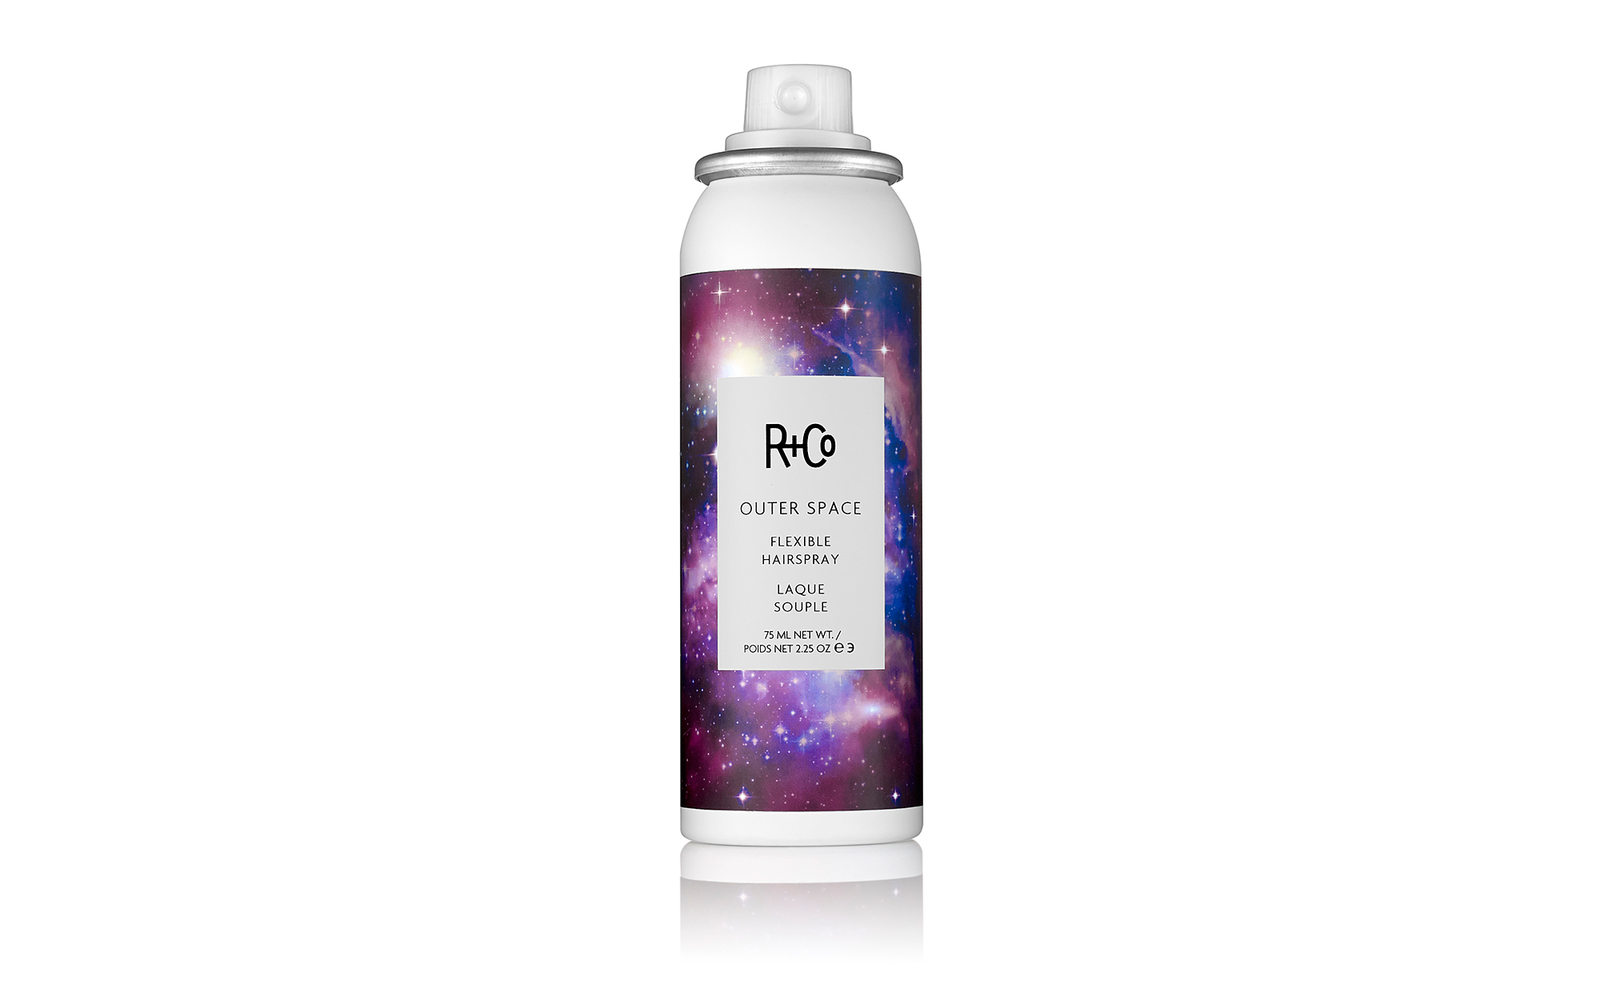 R+Co's Outerspace Working Hairspray